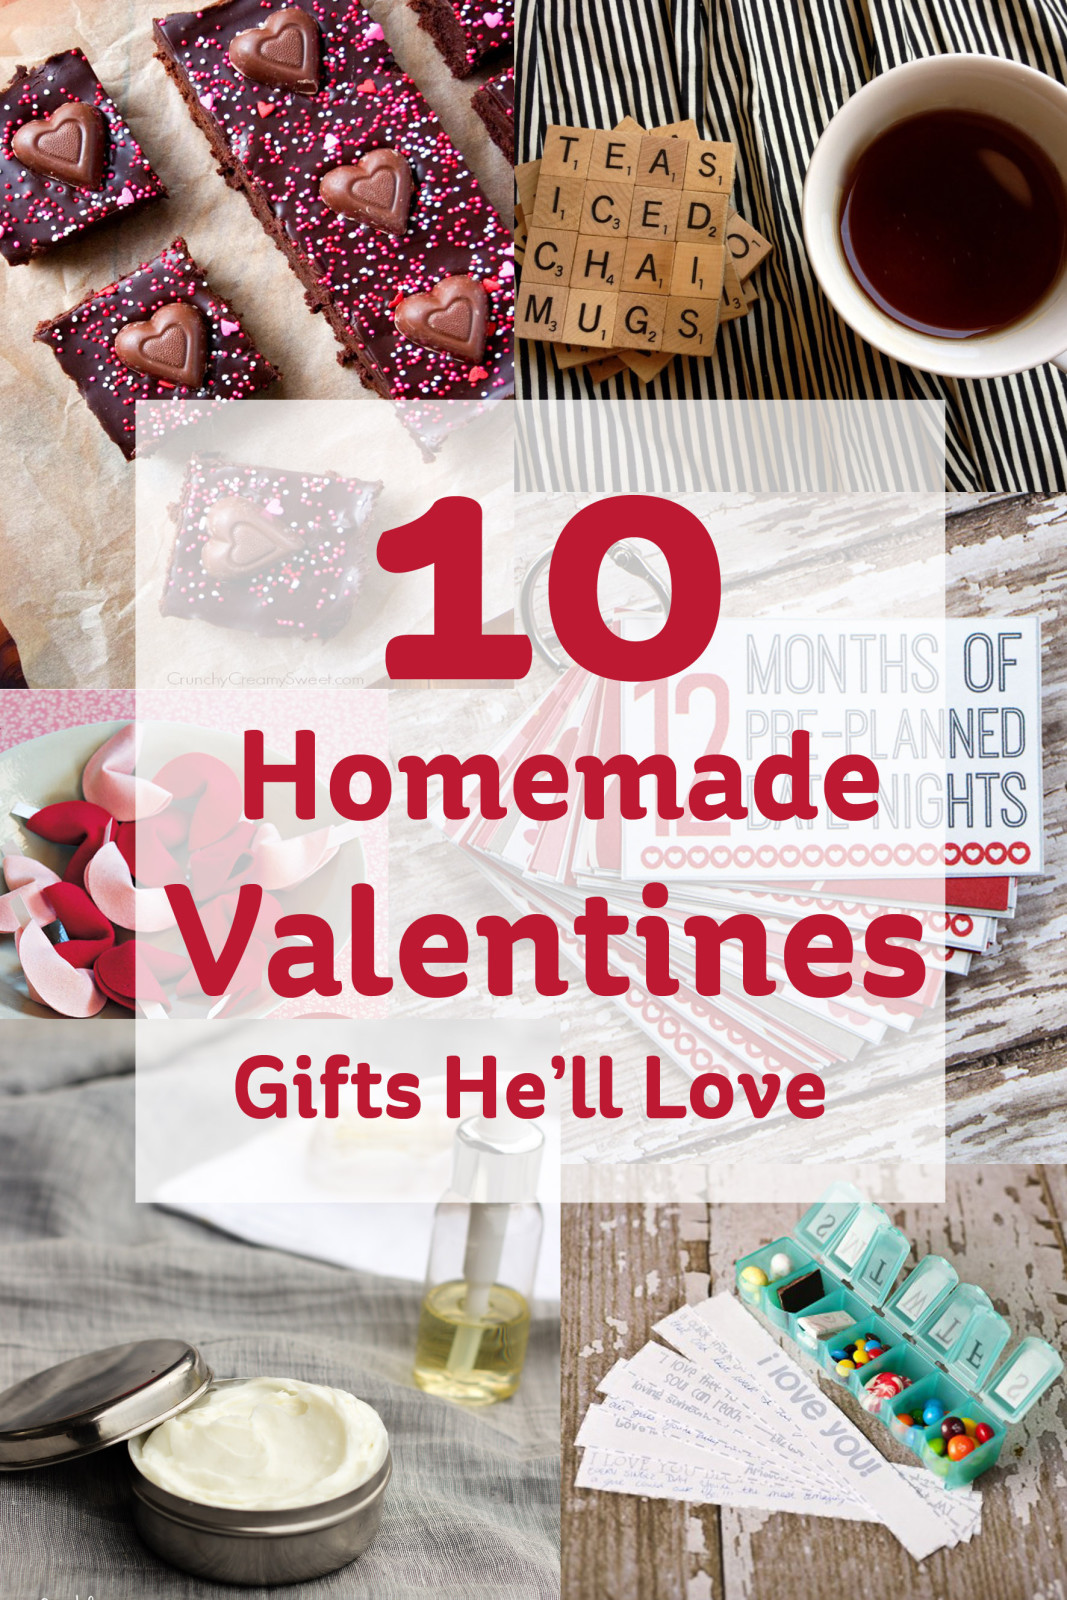 Best ideas about DIY Valentine'S Gifts . Save or Pin 10 Homemade Valentines Gifts He ll Love Hobbycraft Blog Now.